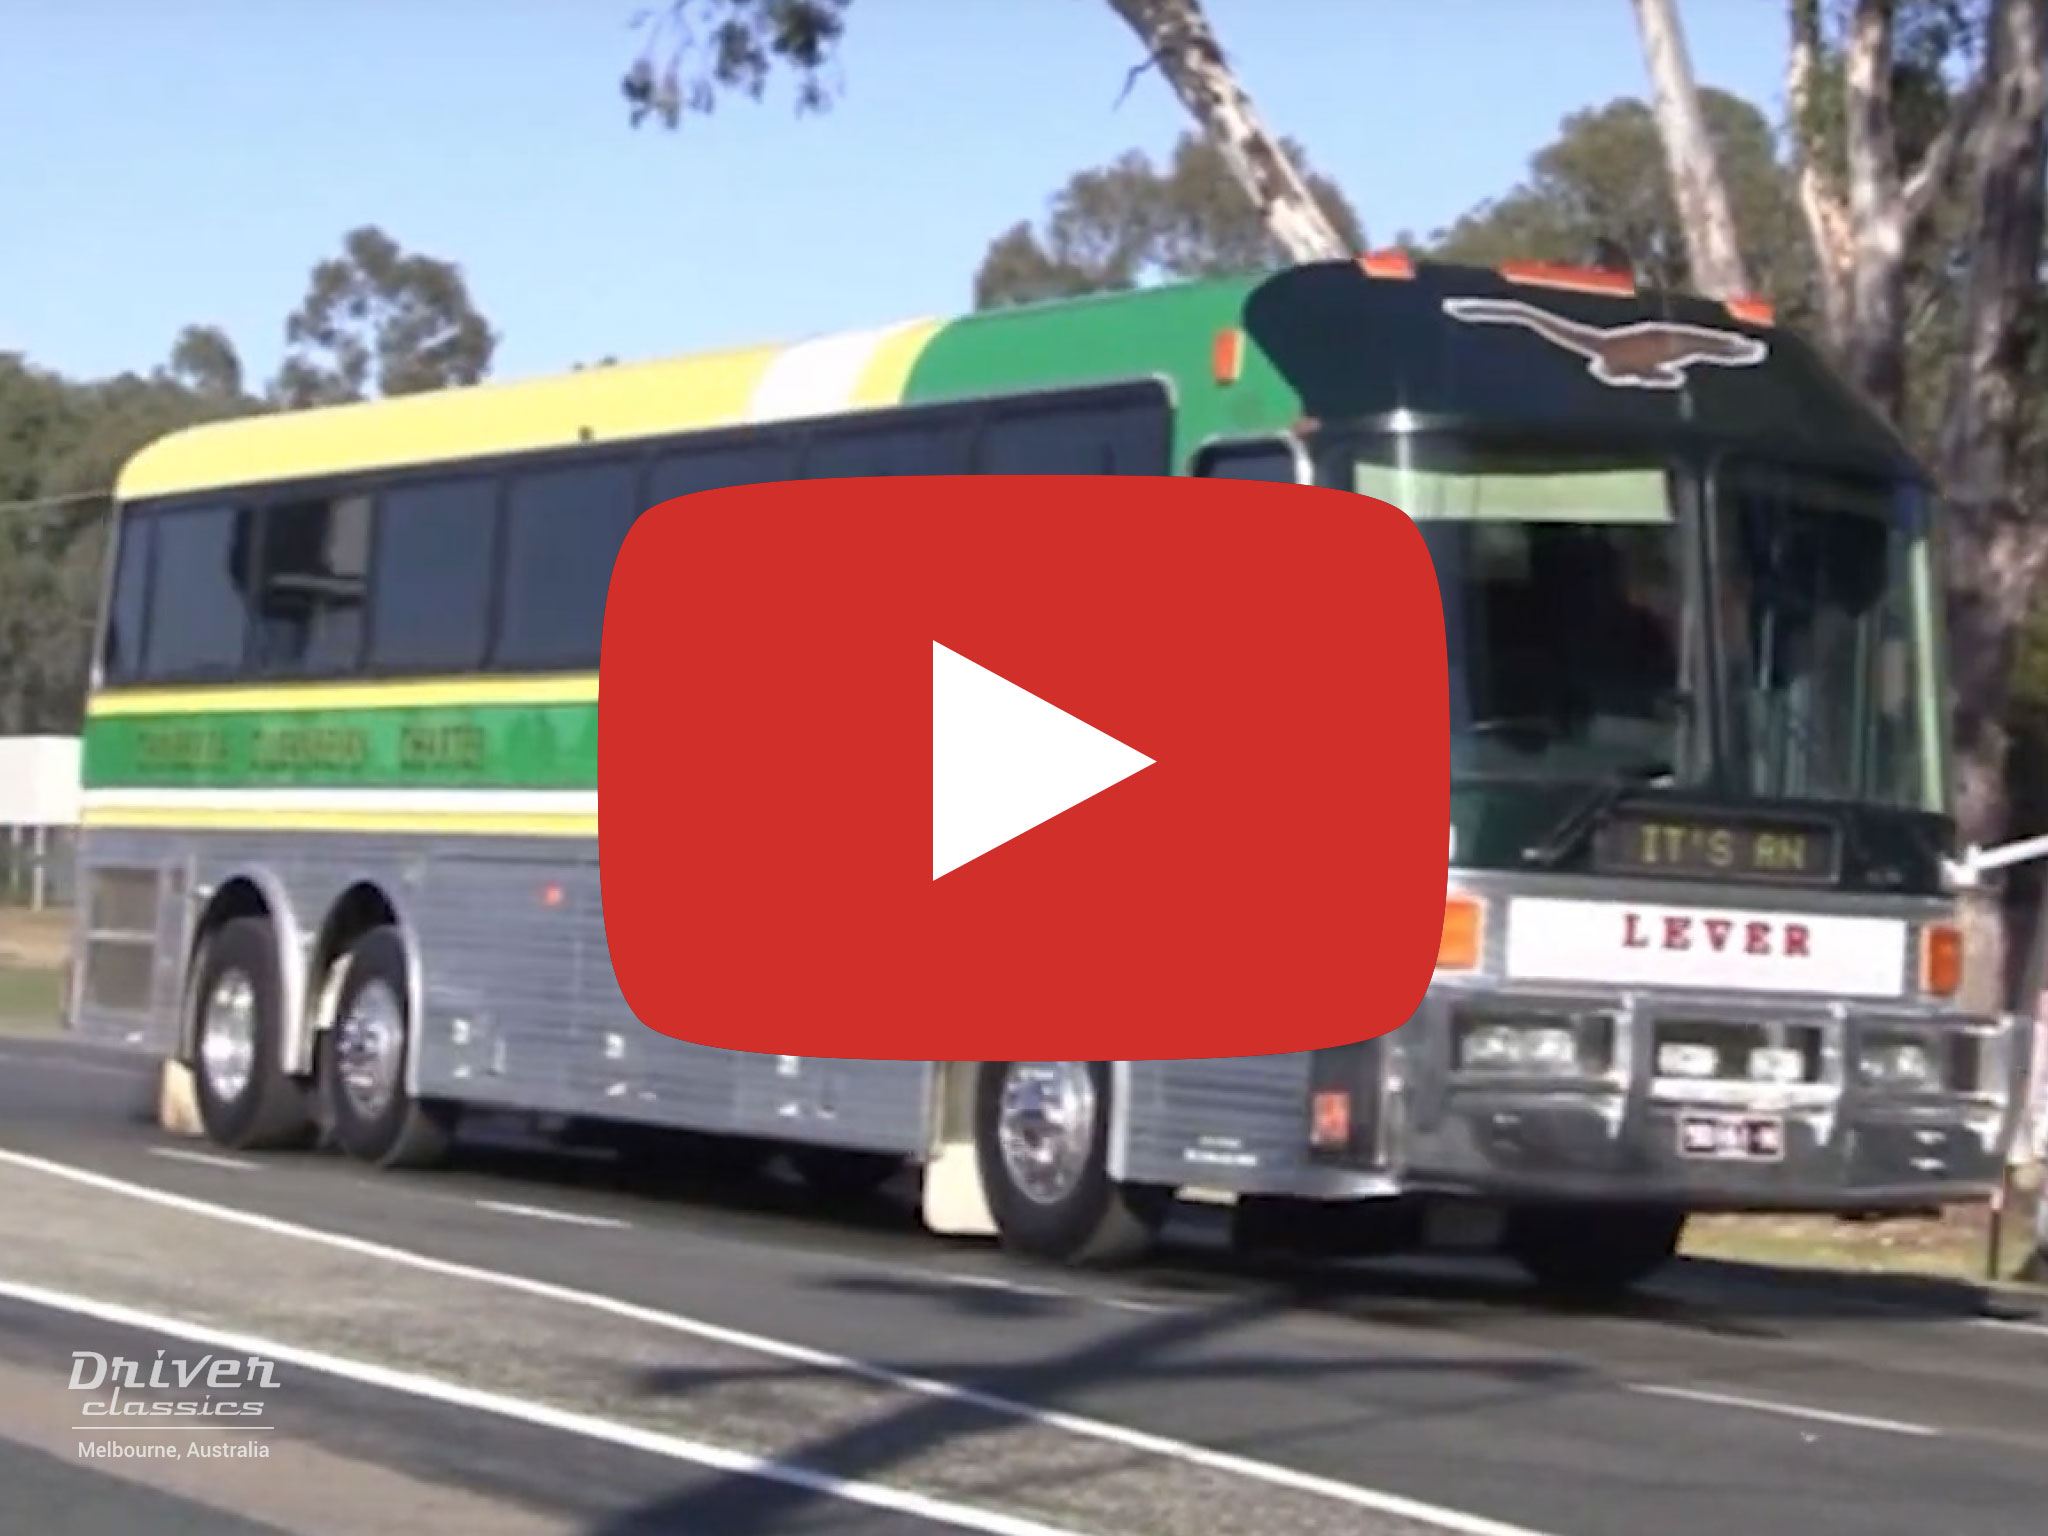 Eagle Model 20 bus, 1989 model, En route to Canberra ACT. Video by David Kemp in 2015